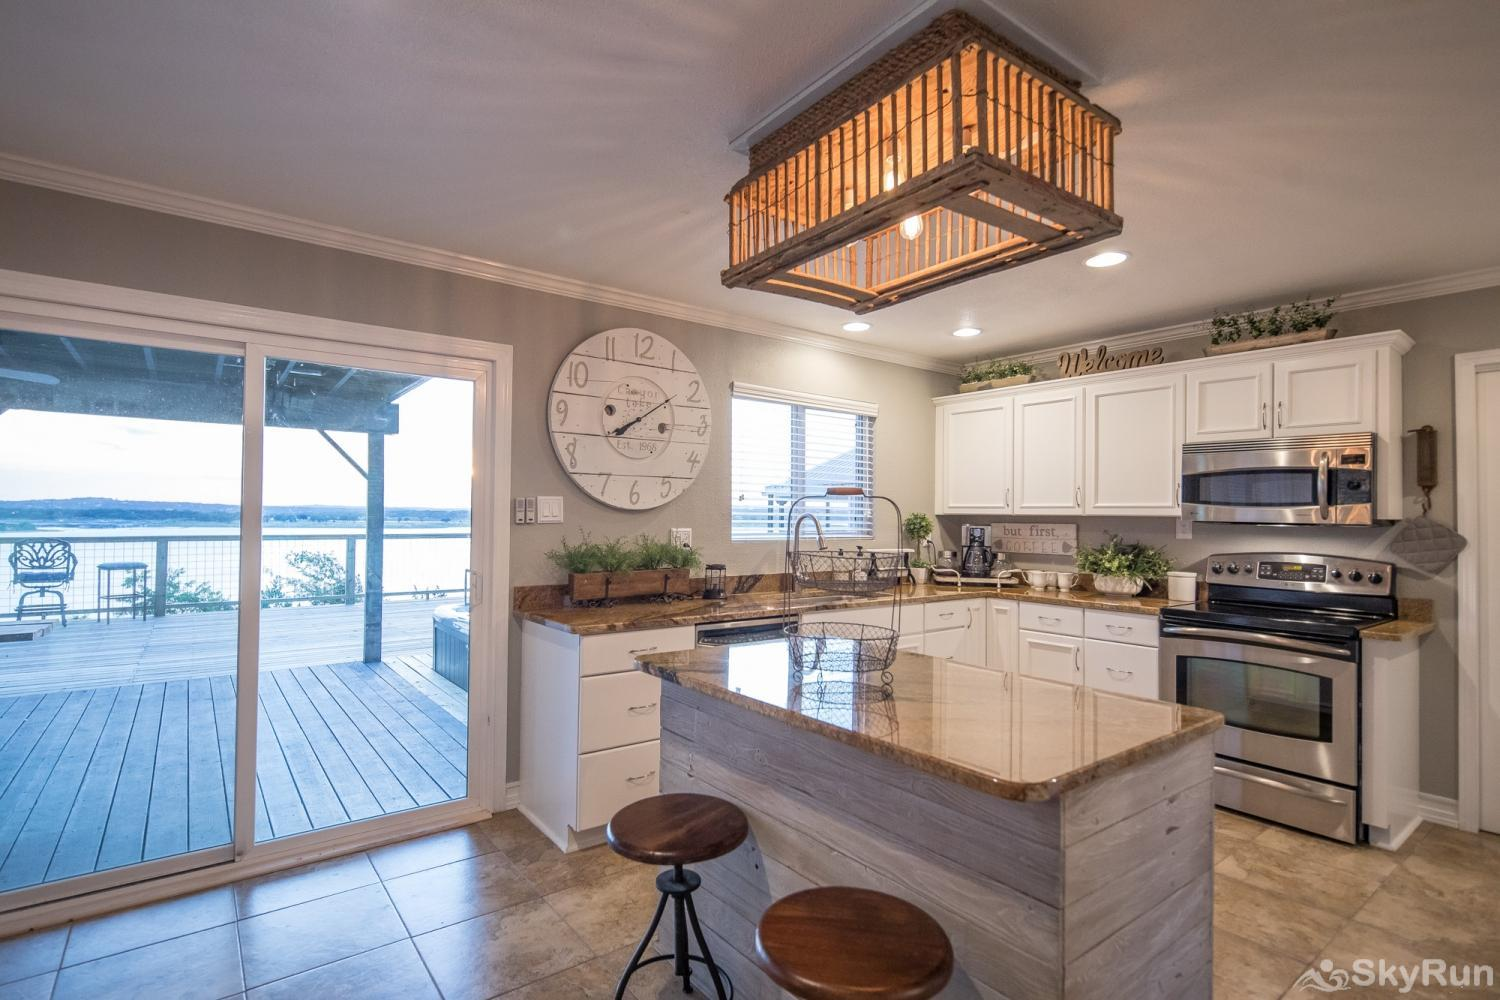 ANCHORS AWAY Kitchen with lake view